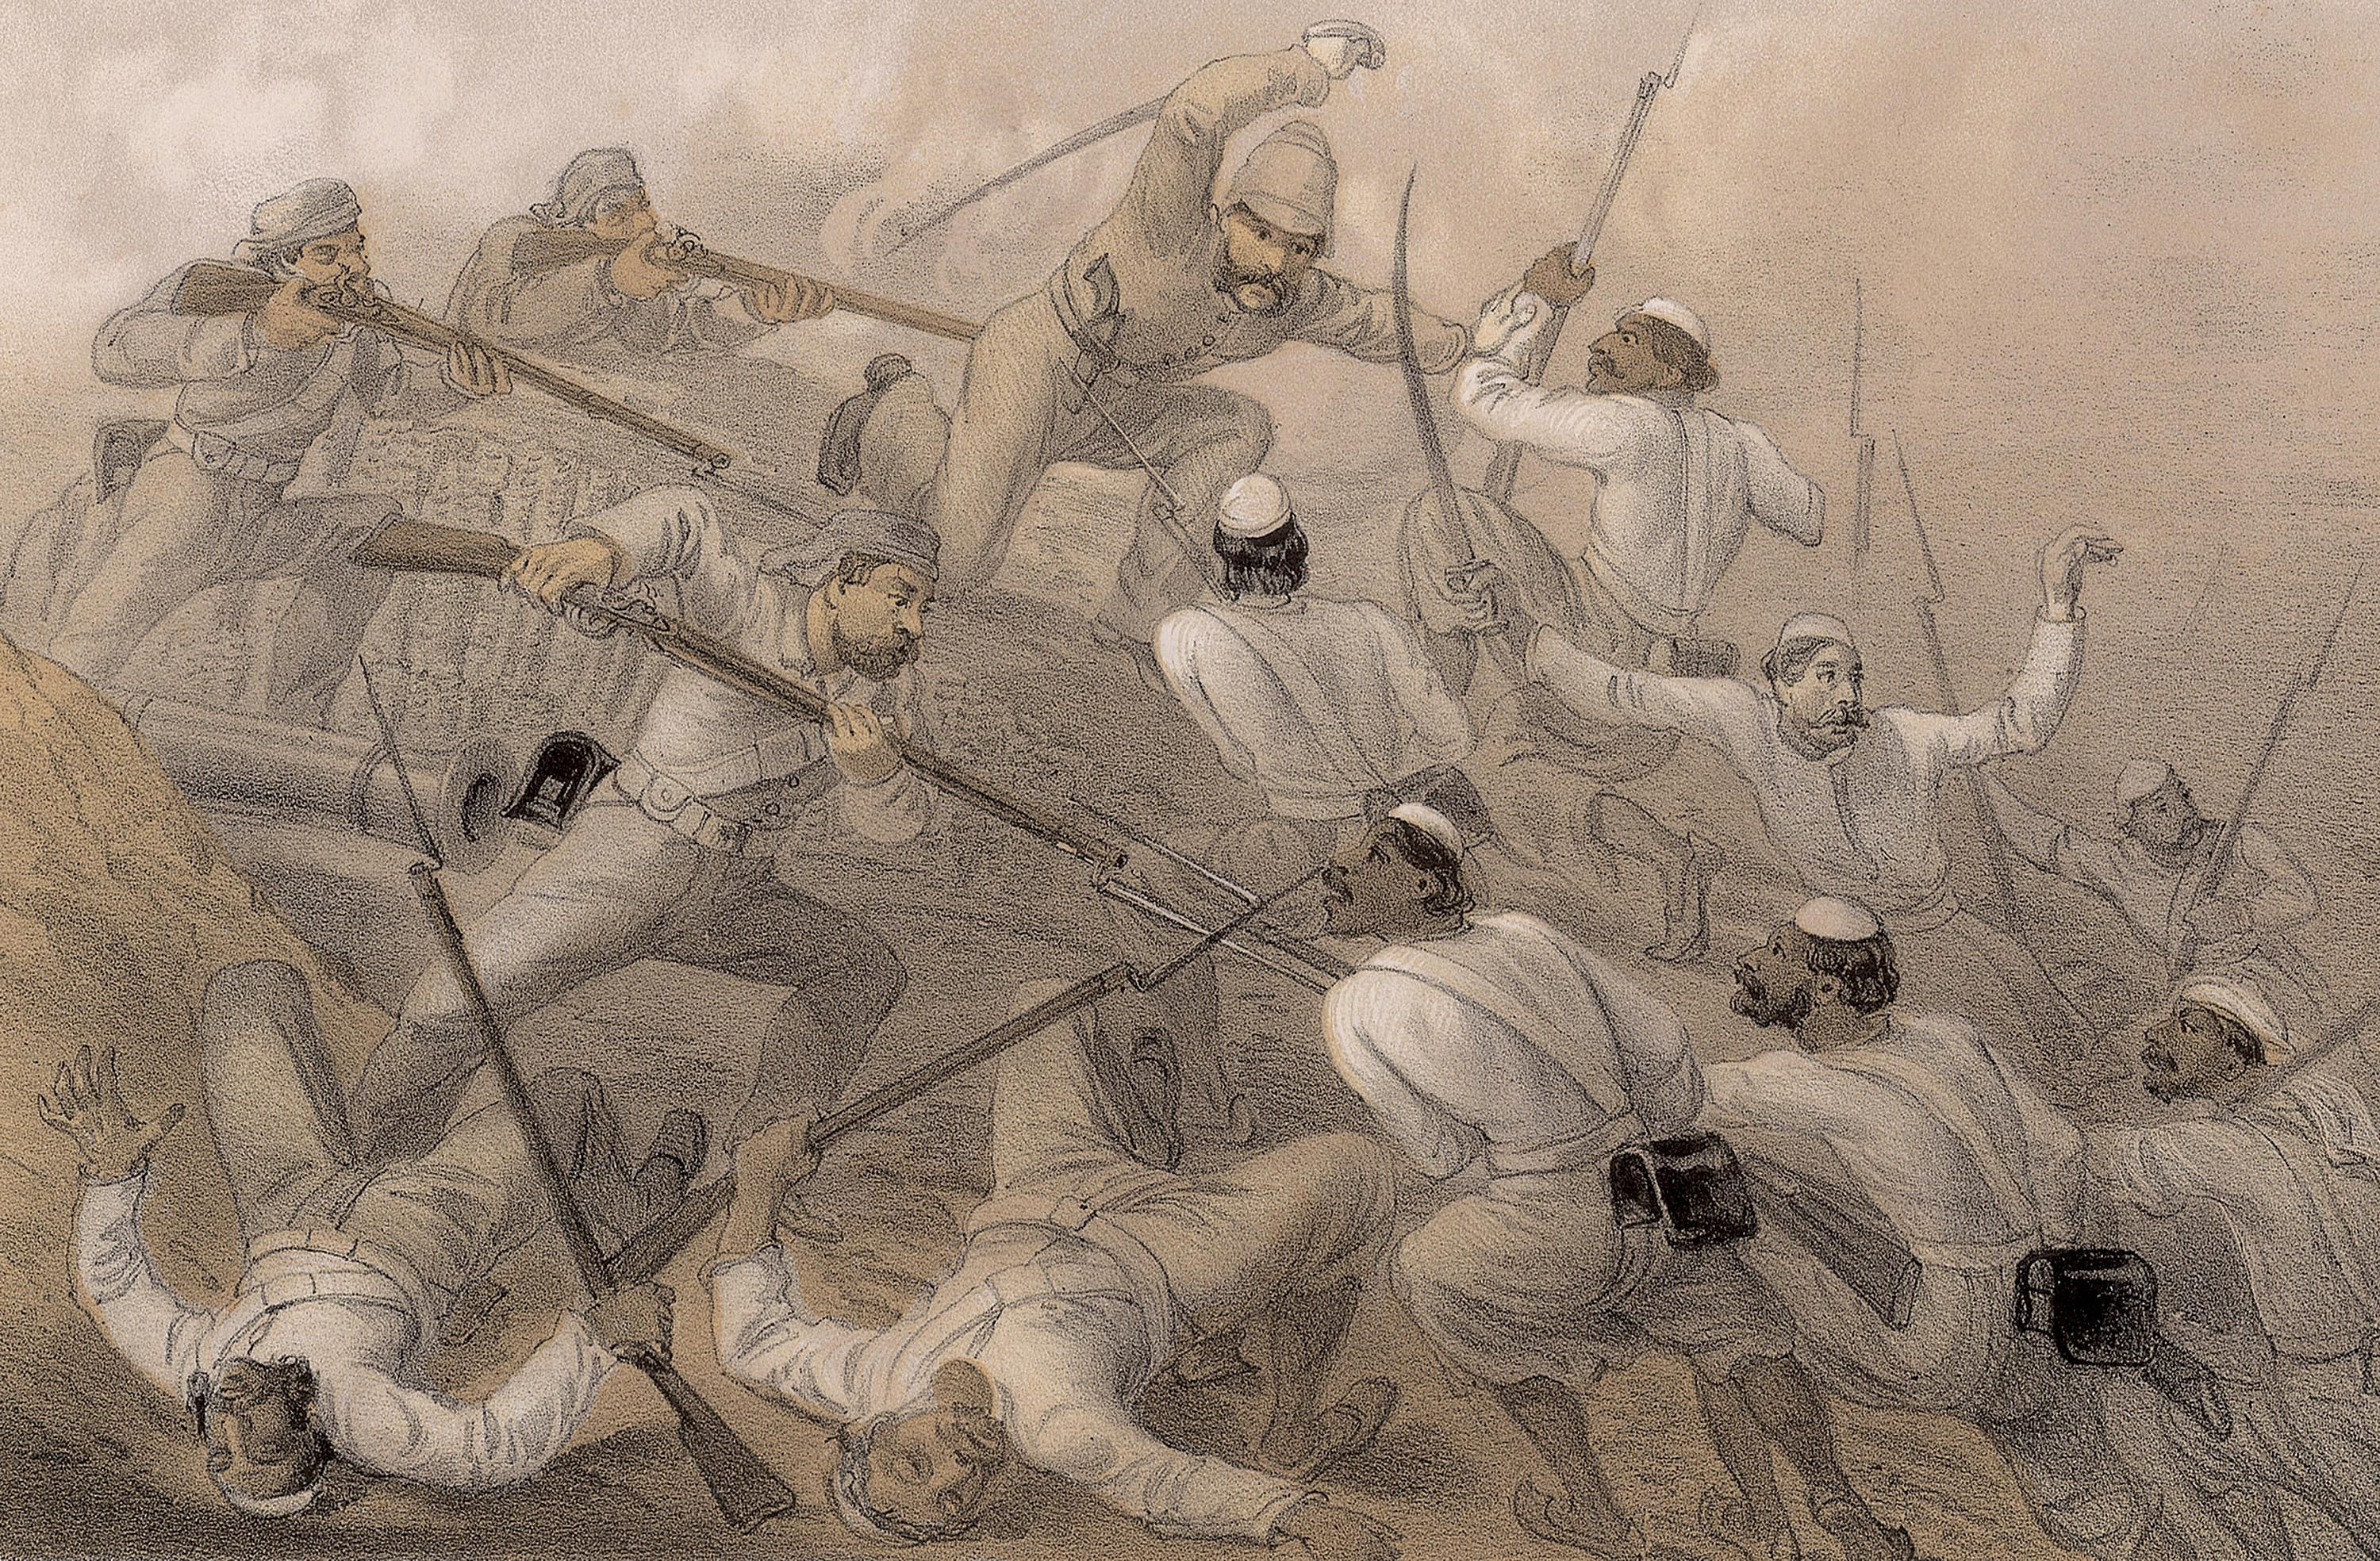 A Timeline of India in the 1800s (British Raj)